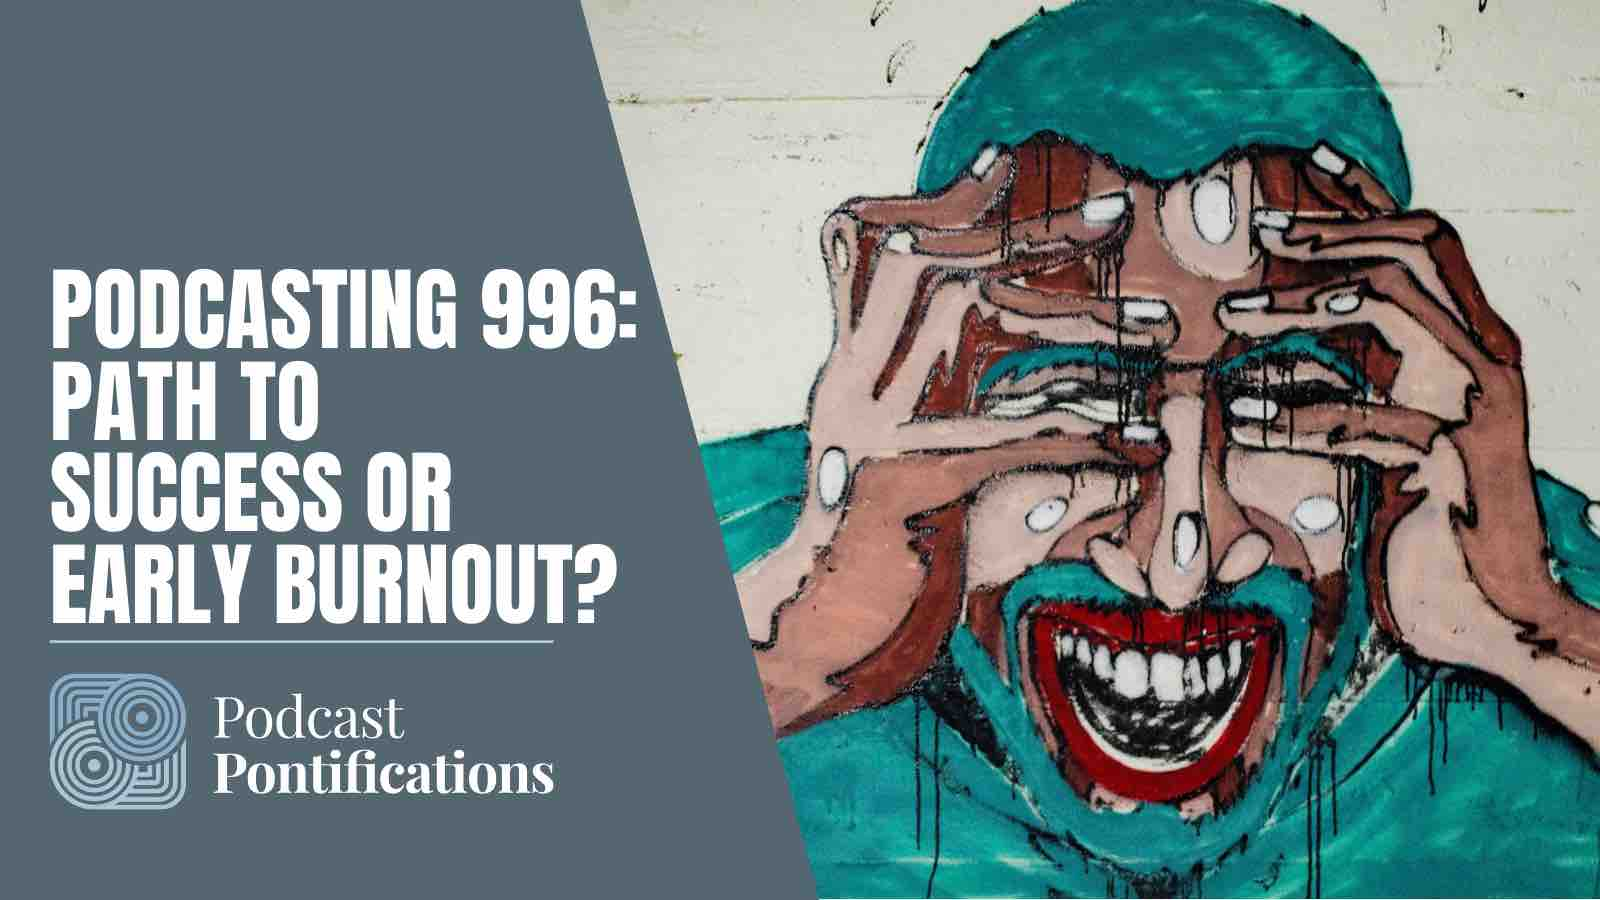 Podcasting 996 - Path To Success Or Early Burnout?